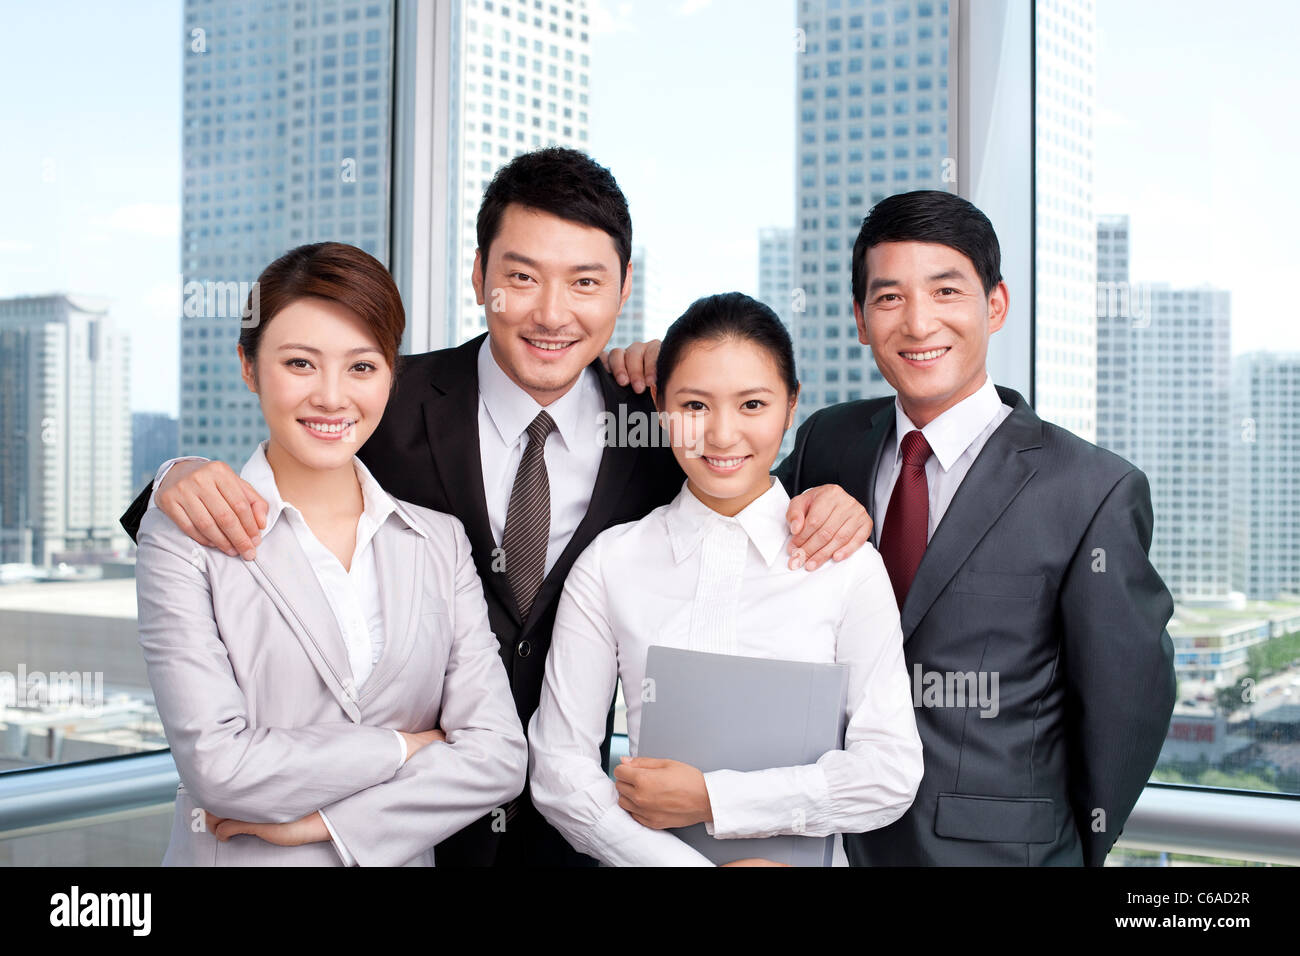 Portrait of businesspeople at the office - Stock Image